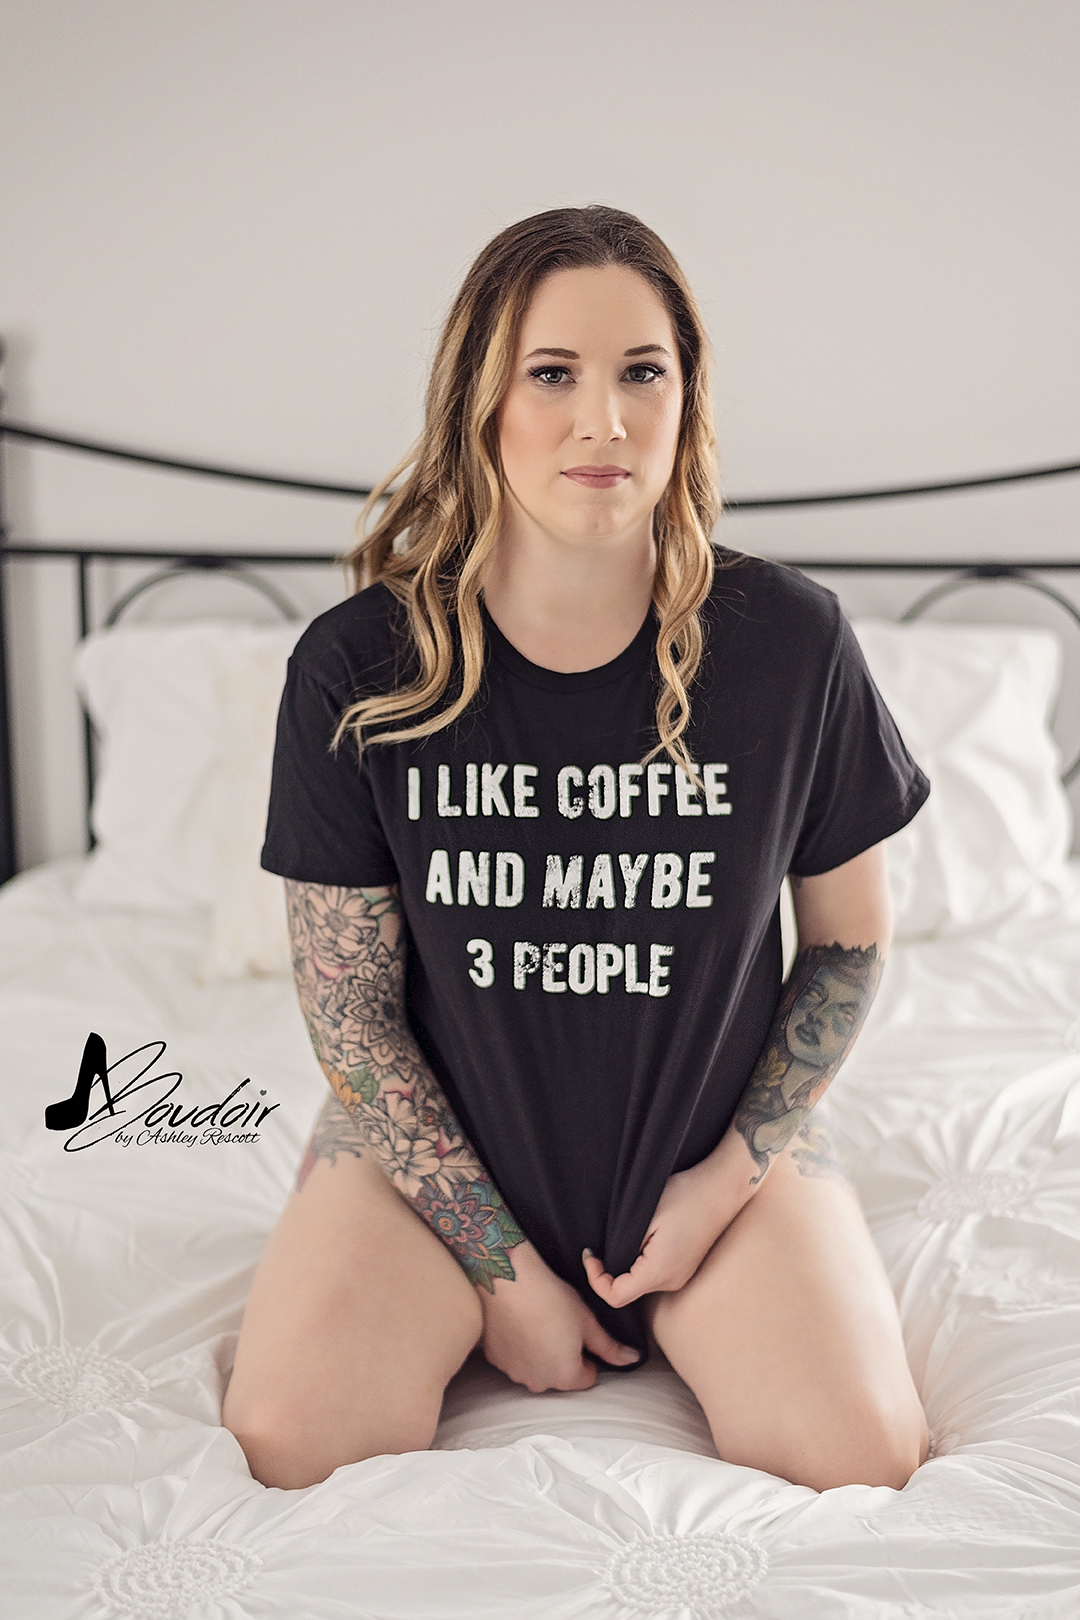 woman kneeling on bed in t shirt